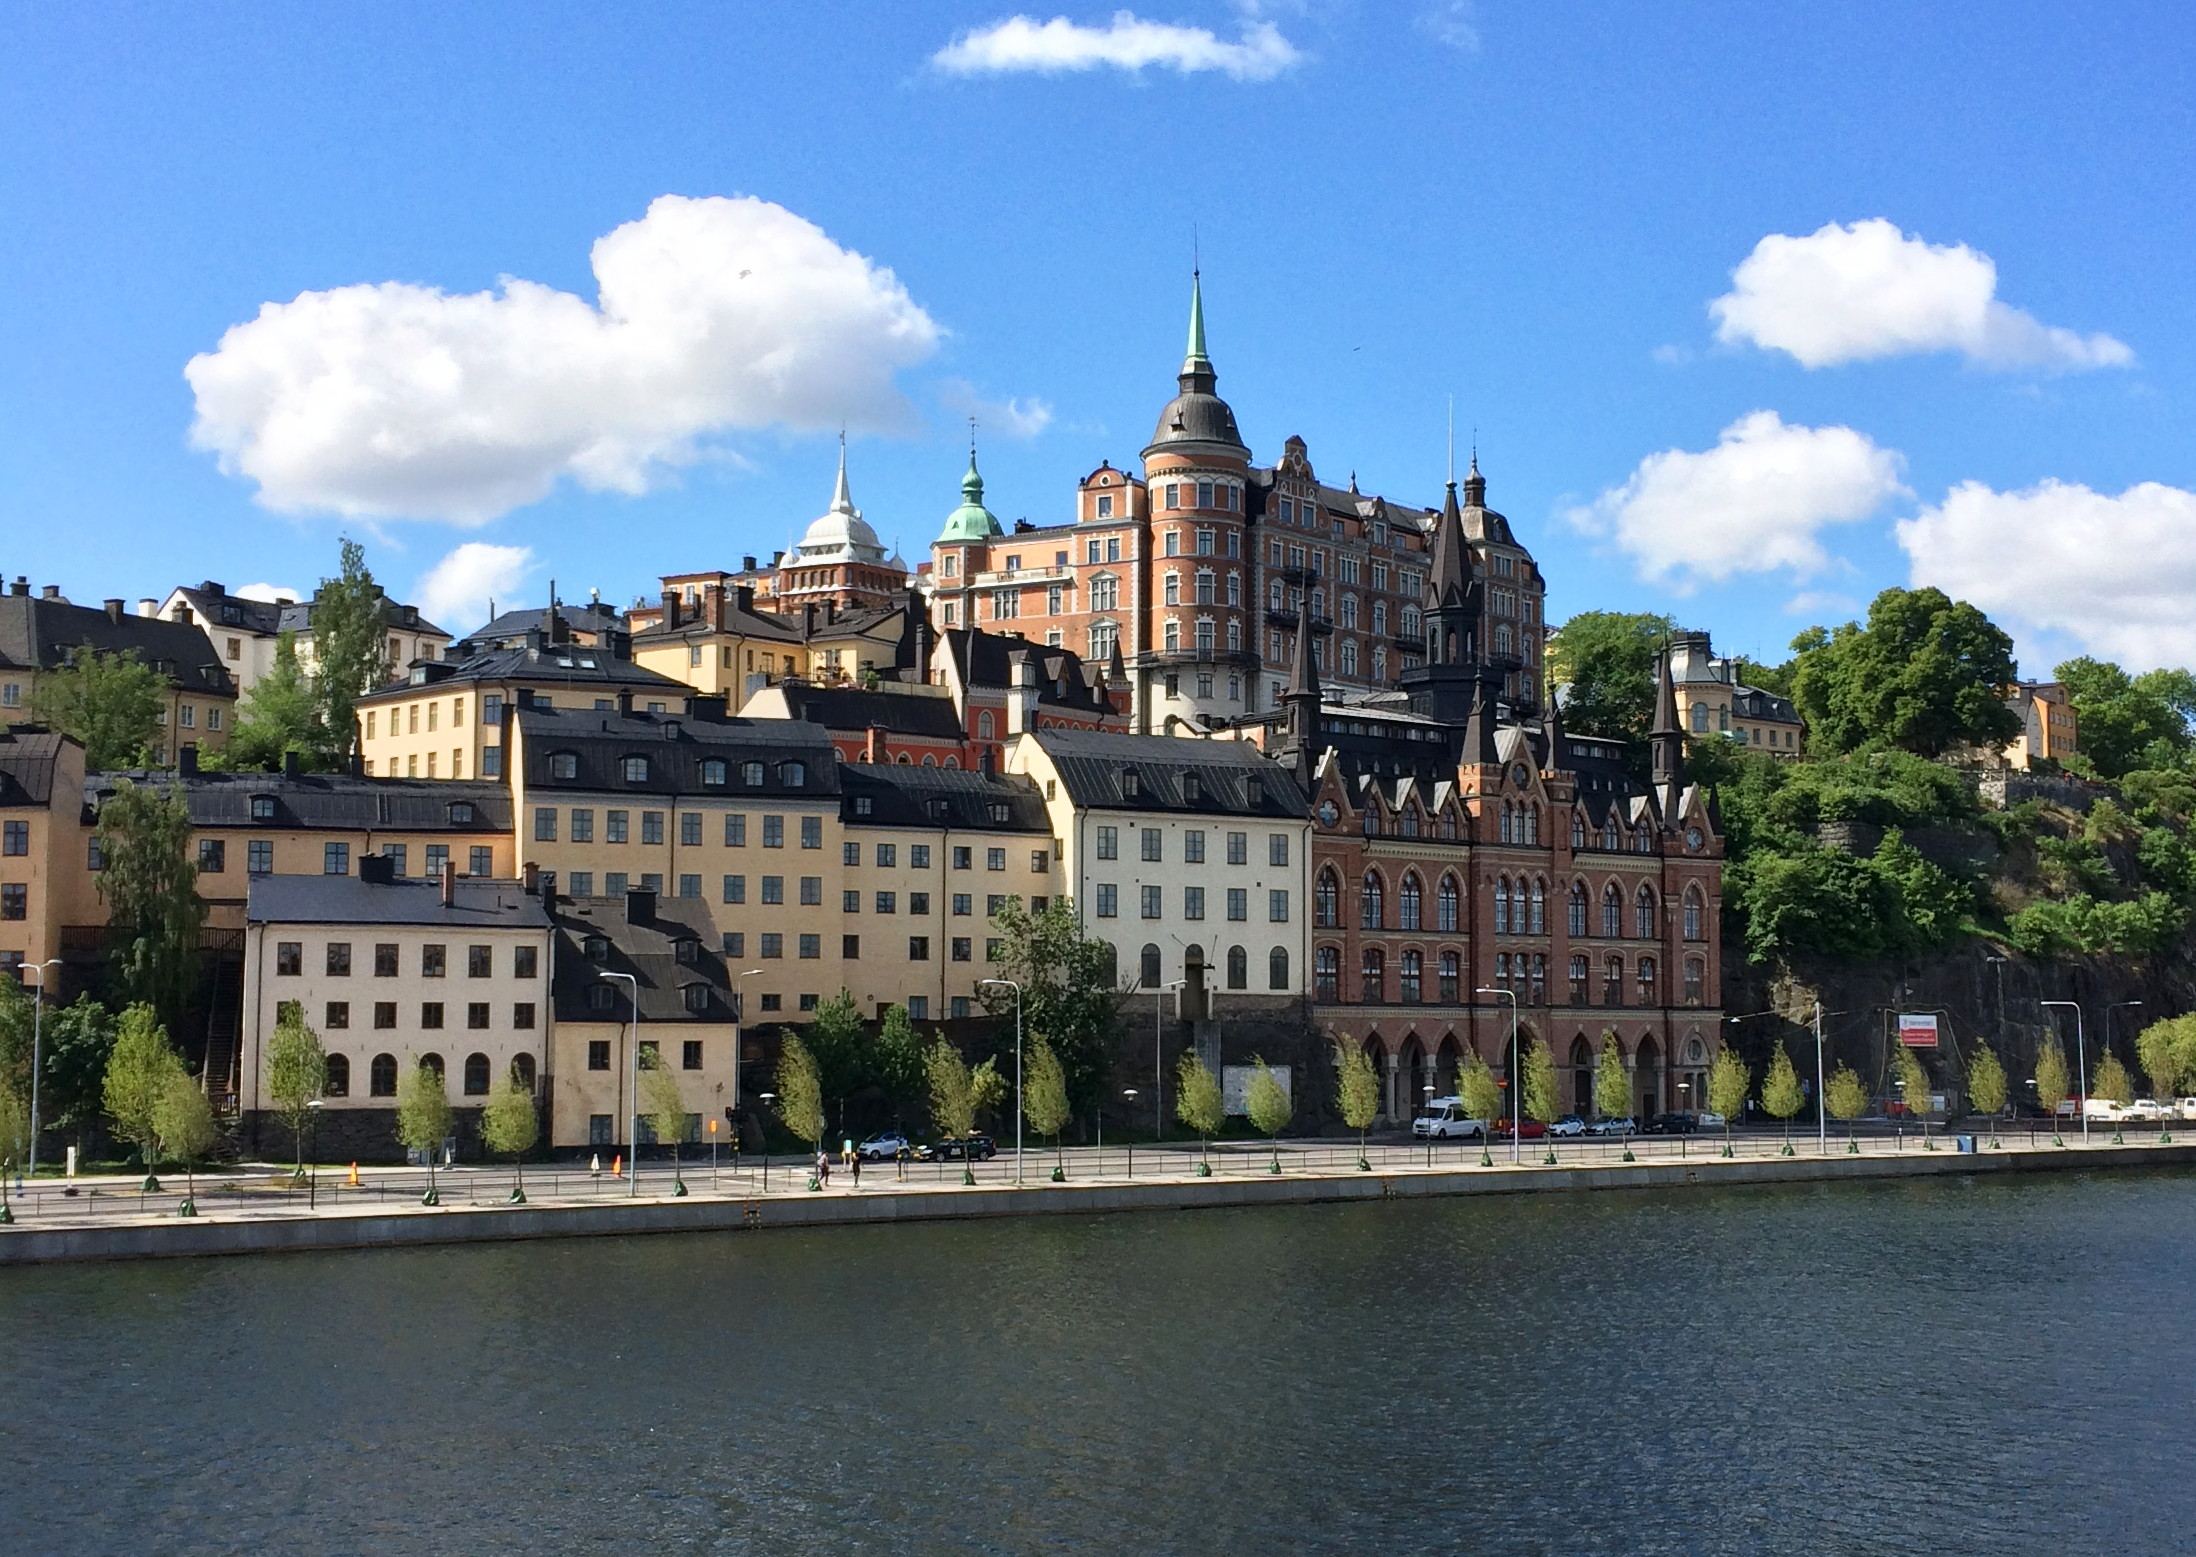 File:Gamla stan, Södermalm, Stockholm, Sweden - panoramio ...